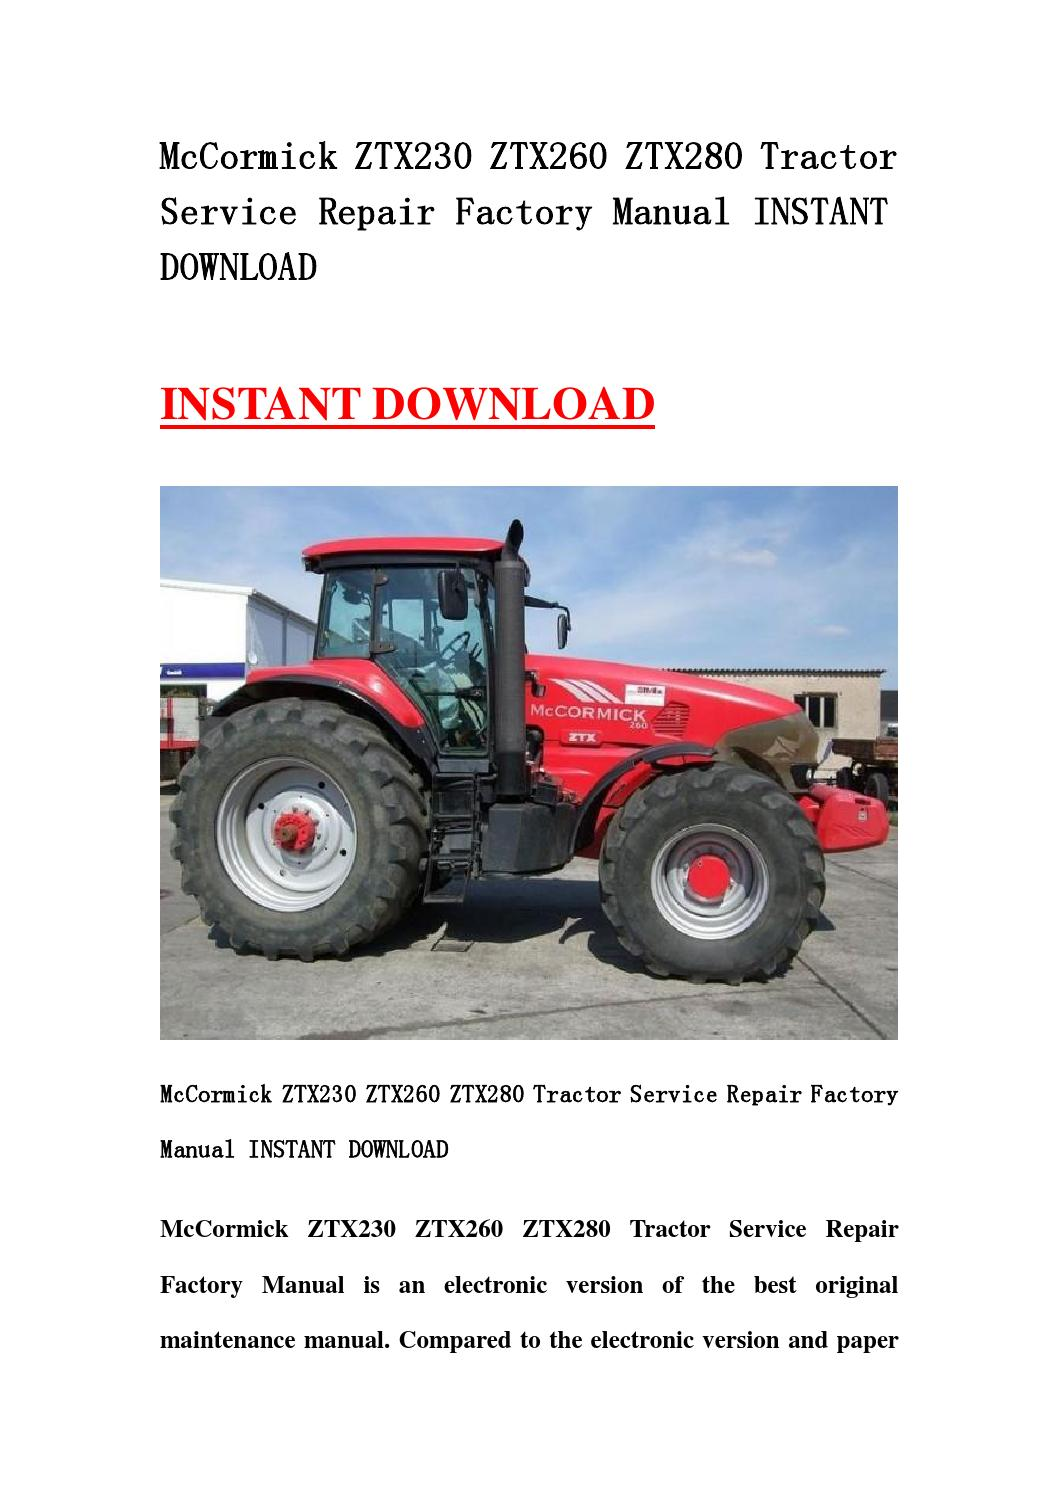 If you 2019re interested in this used mccormick tractor